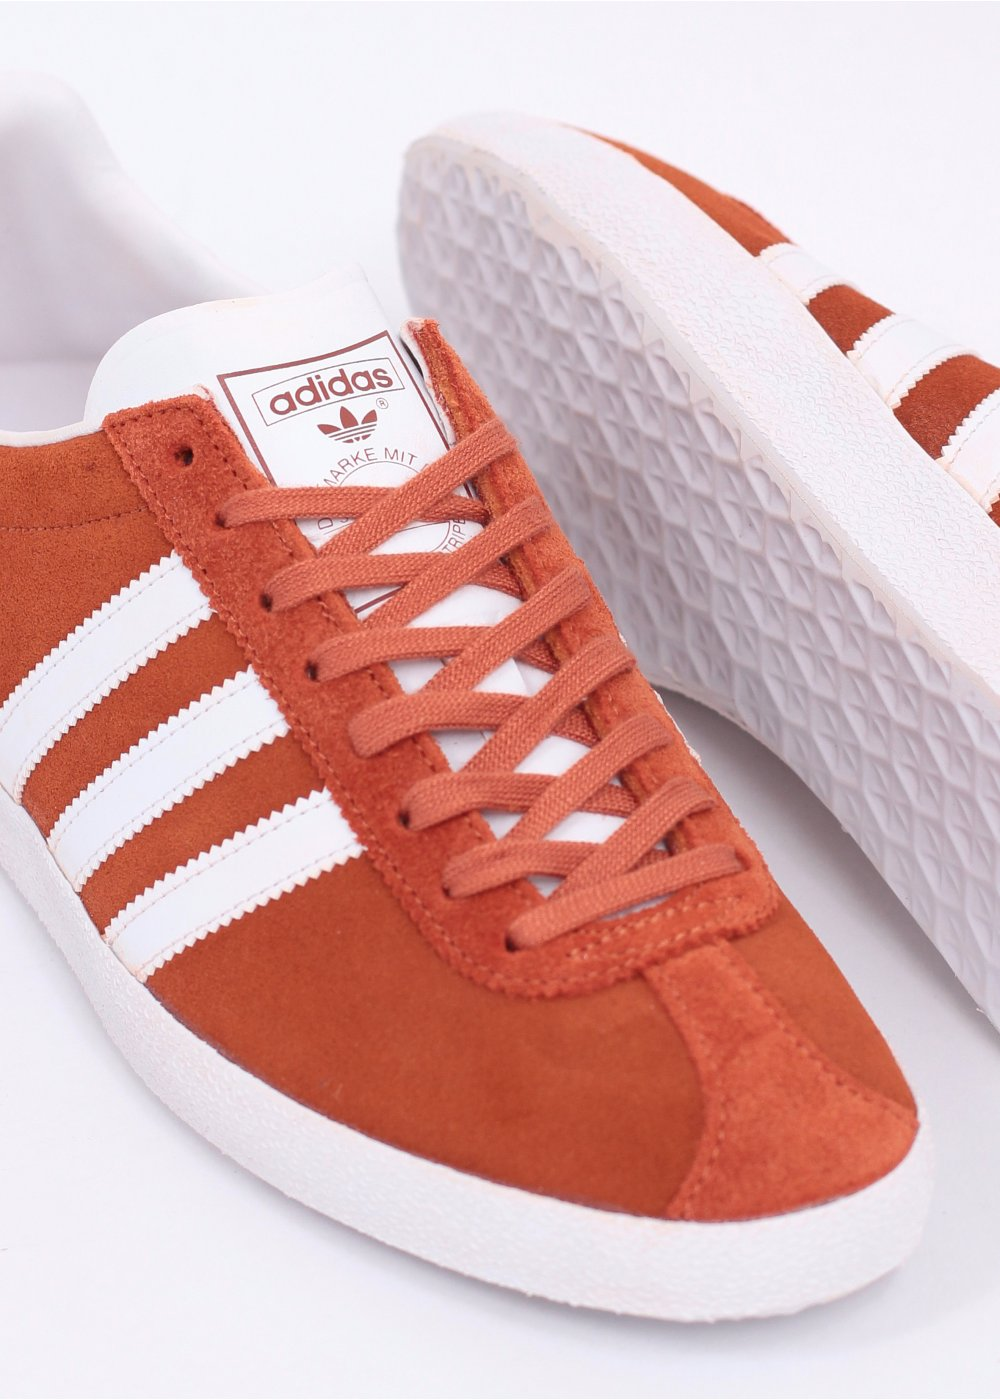 adidas Originals Gazelle OG Trainers - Fox Red   Running White 2b911bb2c74e